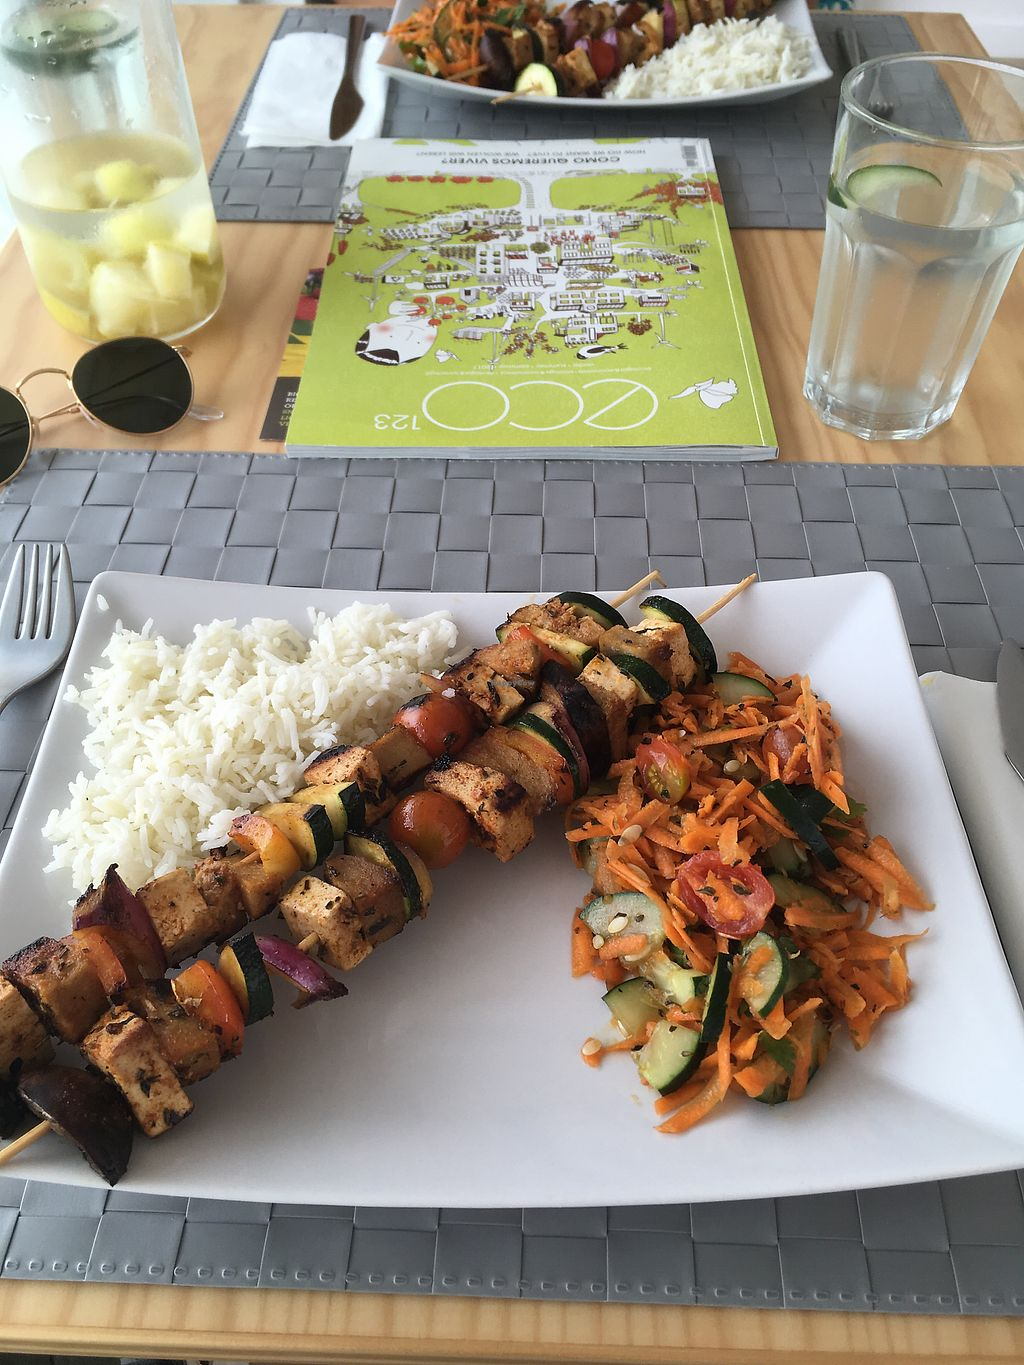 """Photo of Villa Bio Lifestyle  by <a href=""""/members/profile/GarethTaylor-Edwards"""">GarethTaylor-Edwards</a> <br/>tofu vege kebab and salad <br/> August 21, 2017  - <a href='/contact/abuse/image/95006/295198'>Report</a>"""